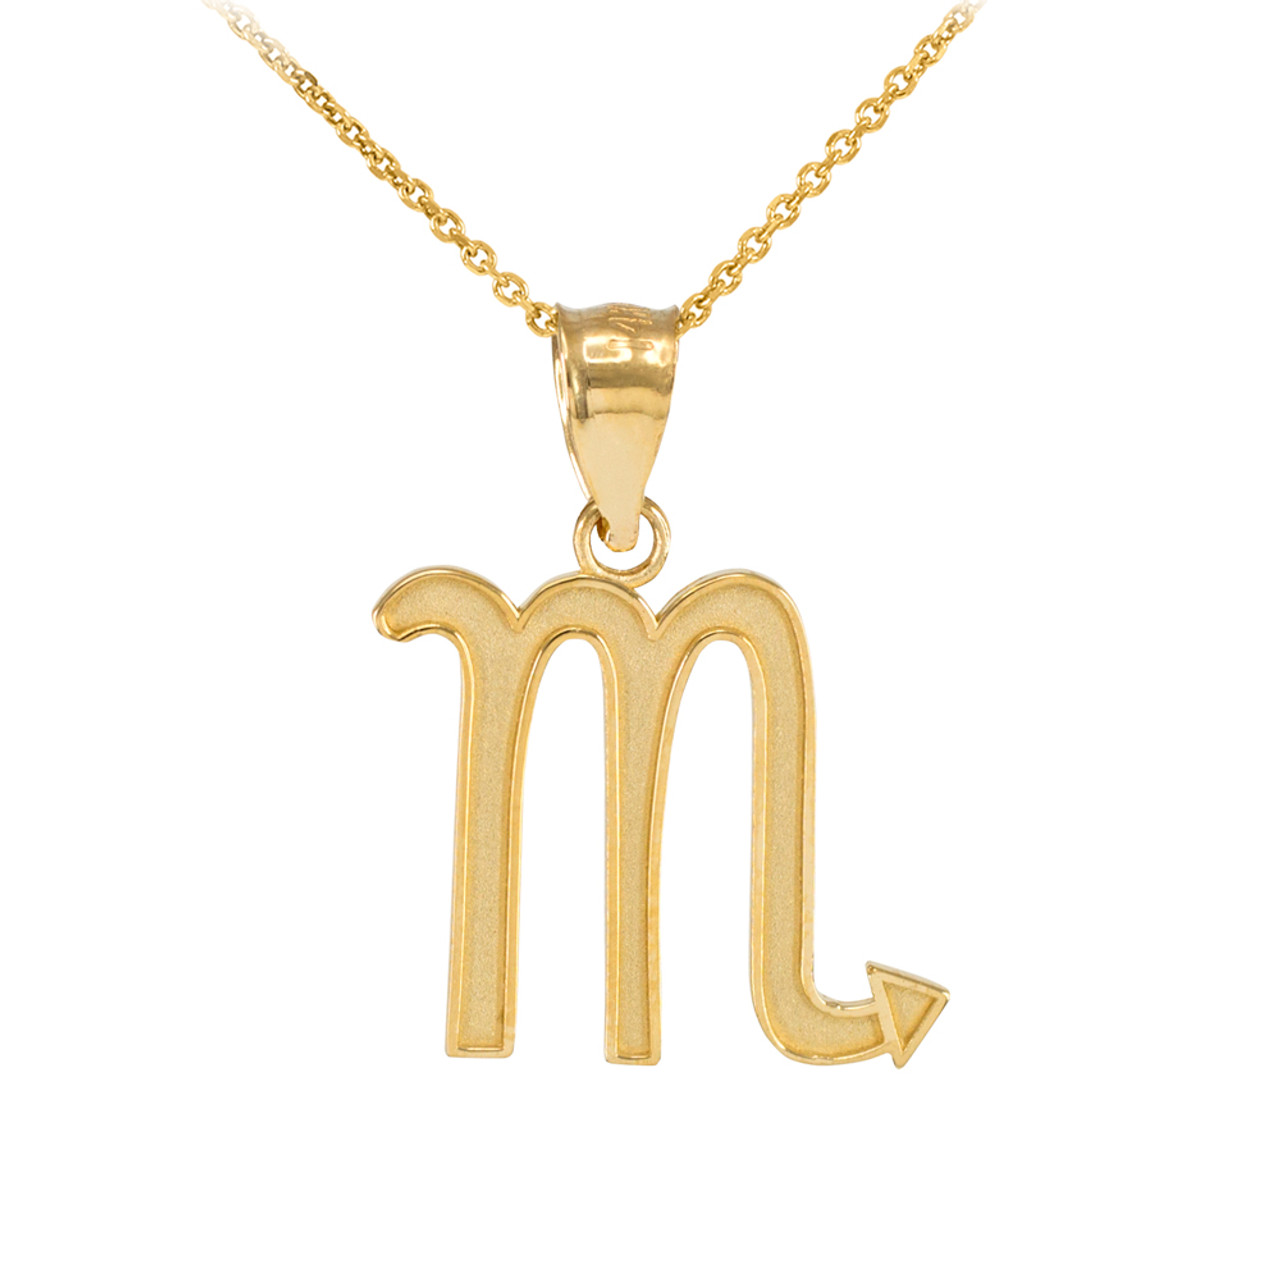 necklace stilnest zodiac us sign scorpio by designer pendant anna saccone sn en